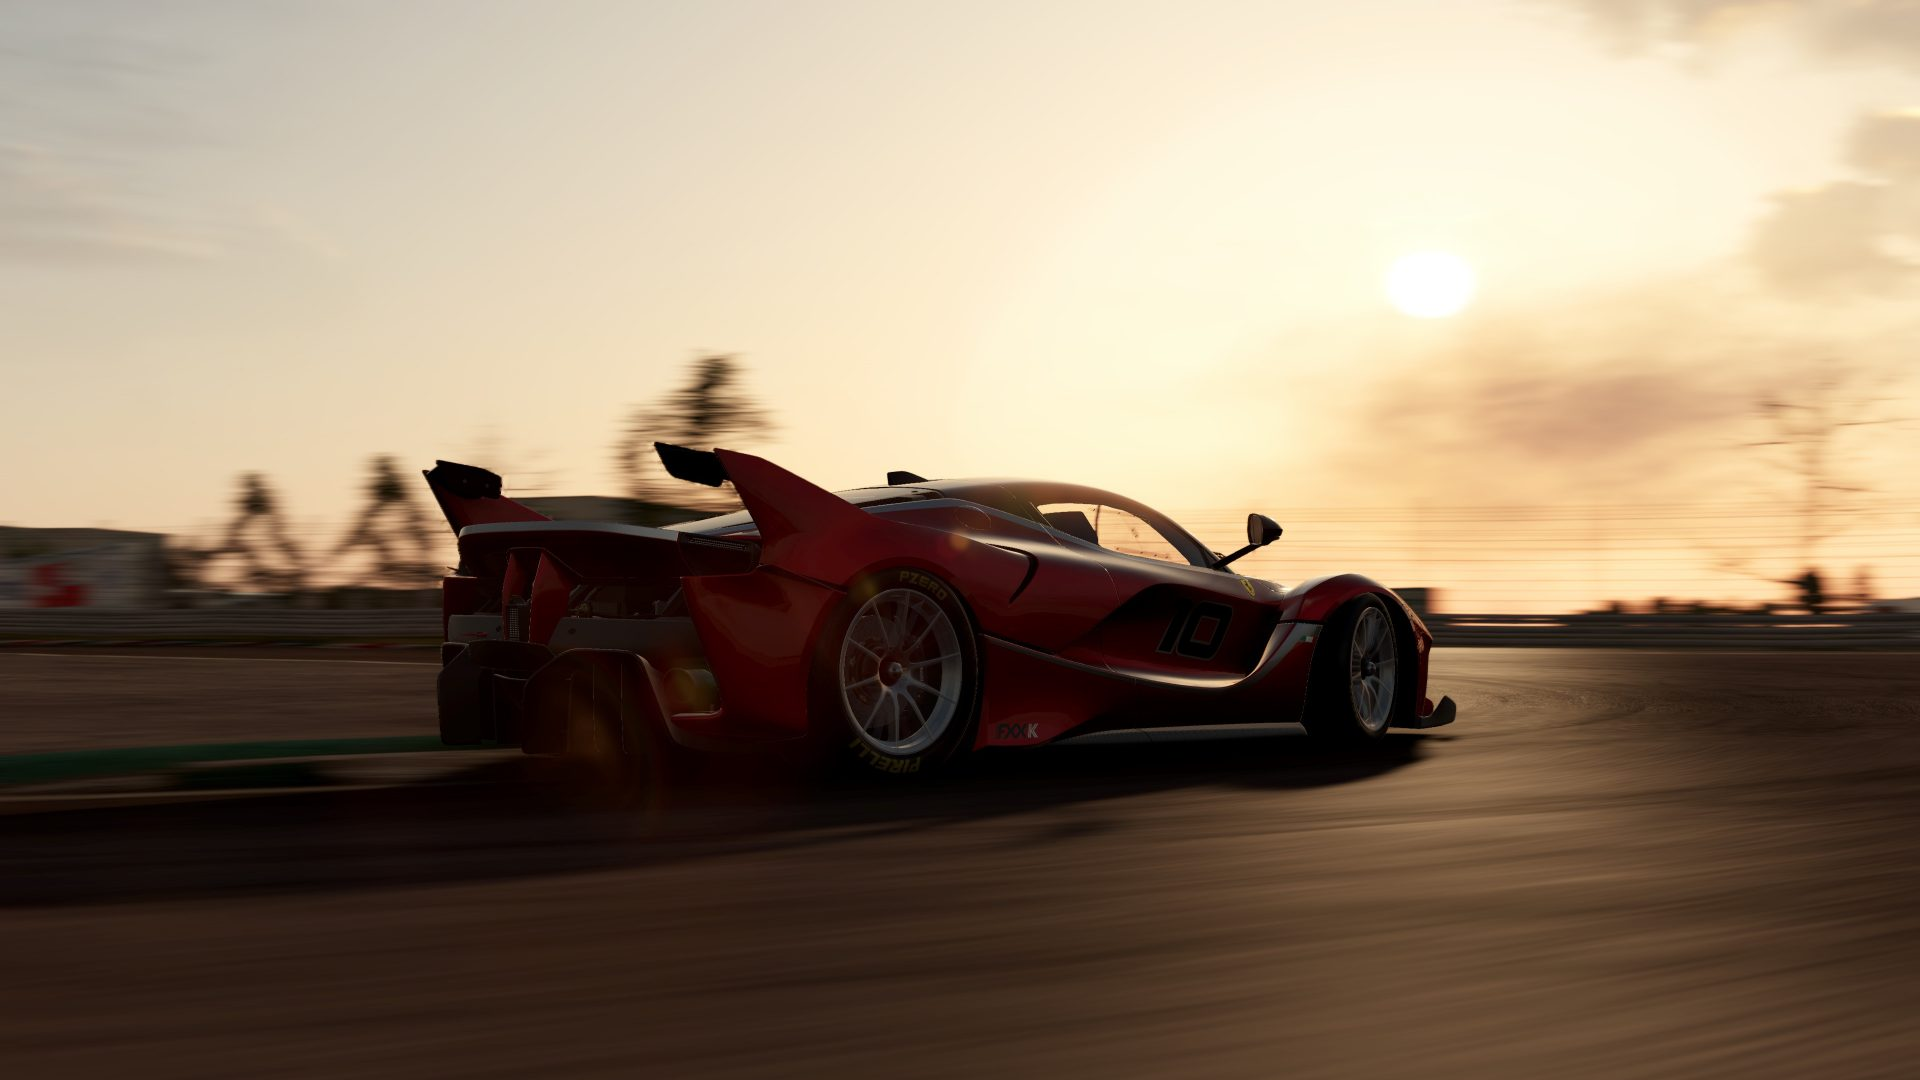 Project Cars devs' next-gen console sounds like a bad idea